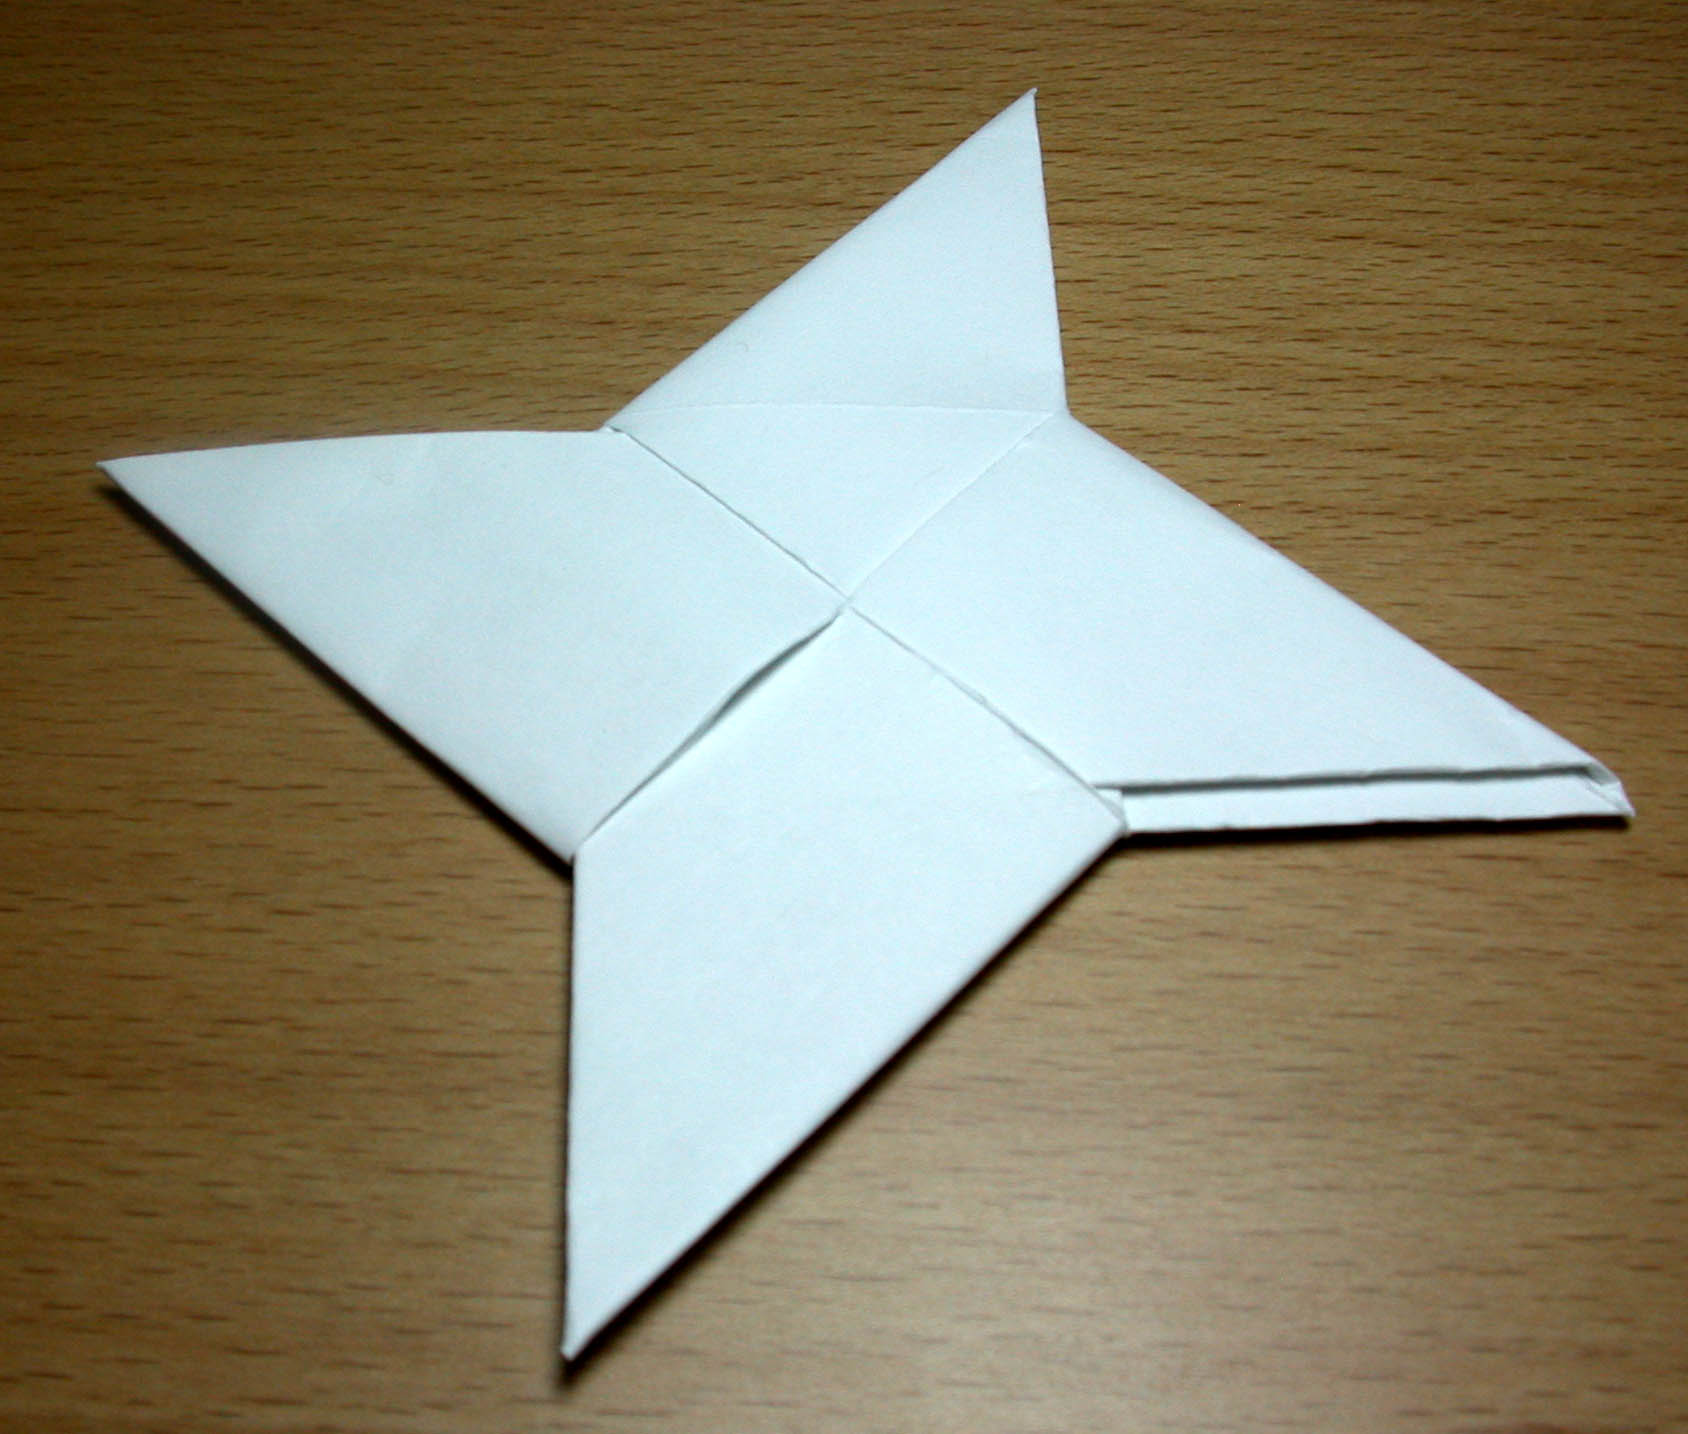 Origami Throwing Star Directions